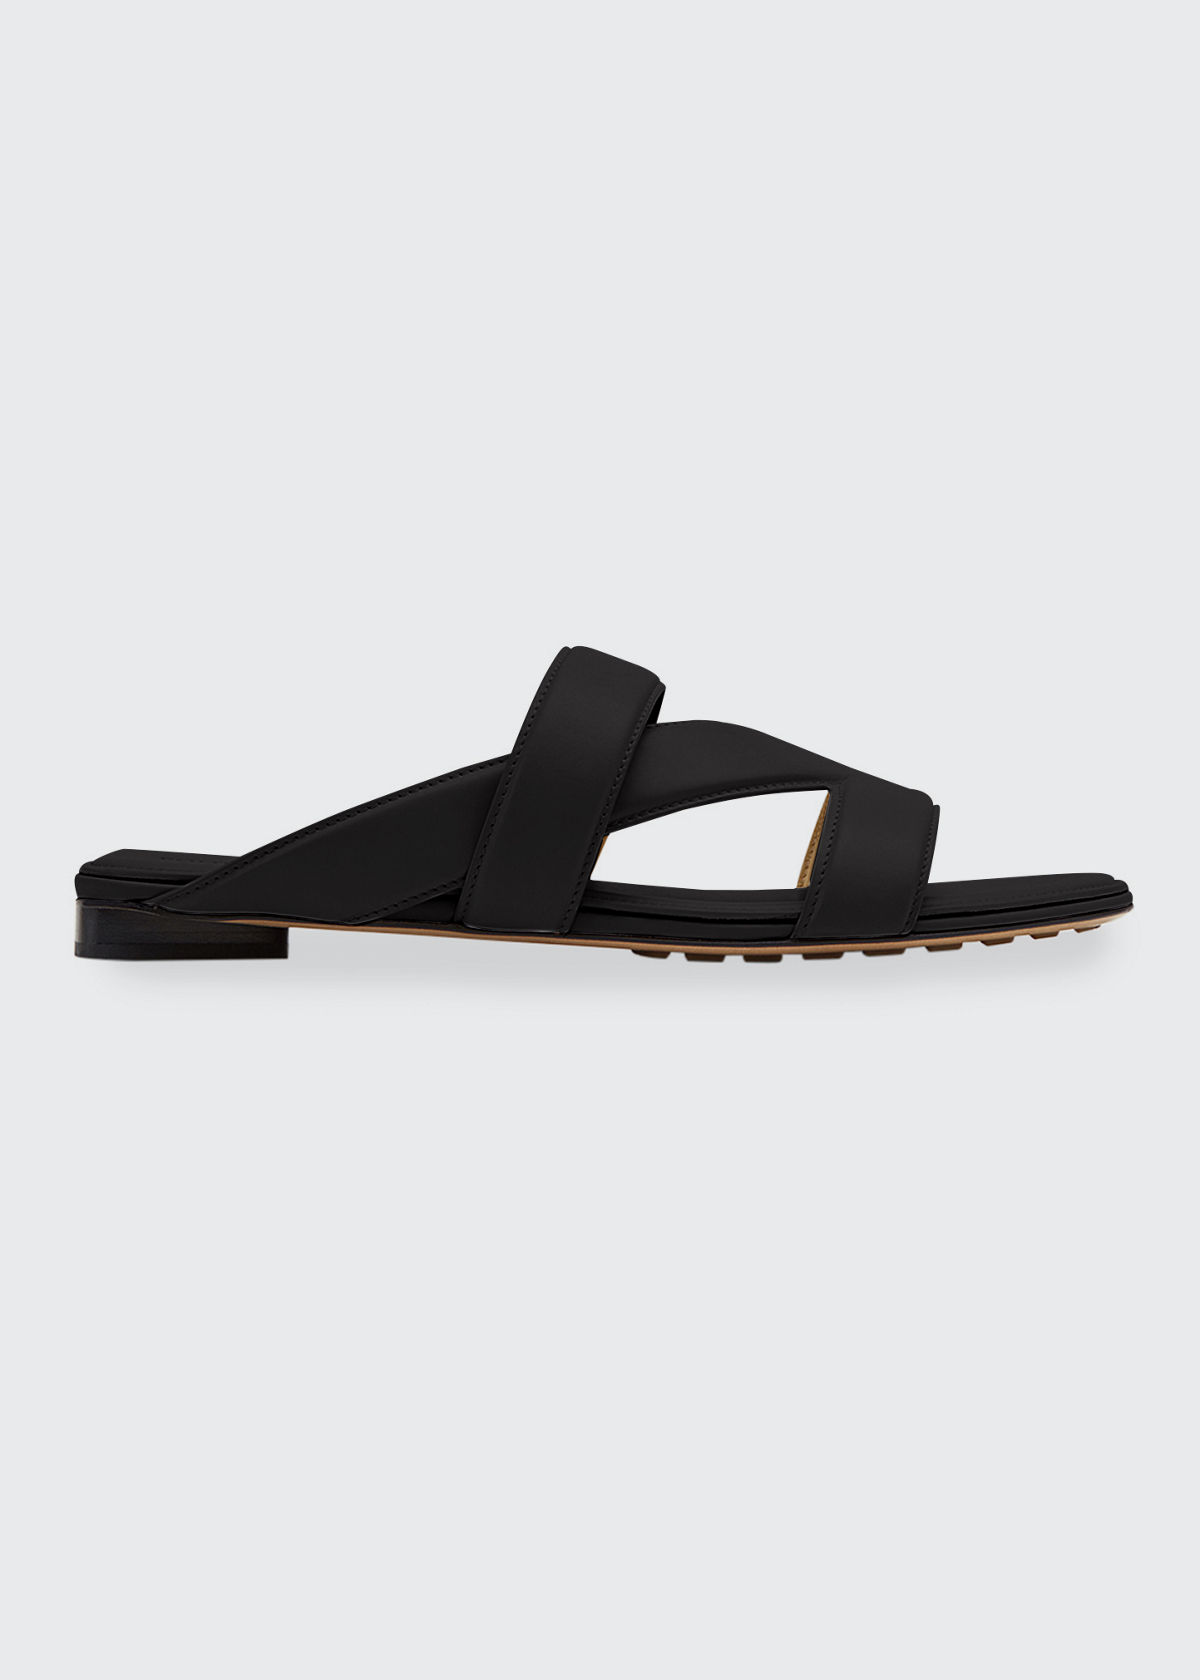 Bottega Veneta THE BAND FLAT SANDALS